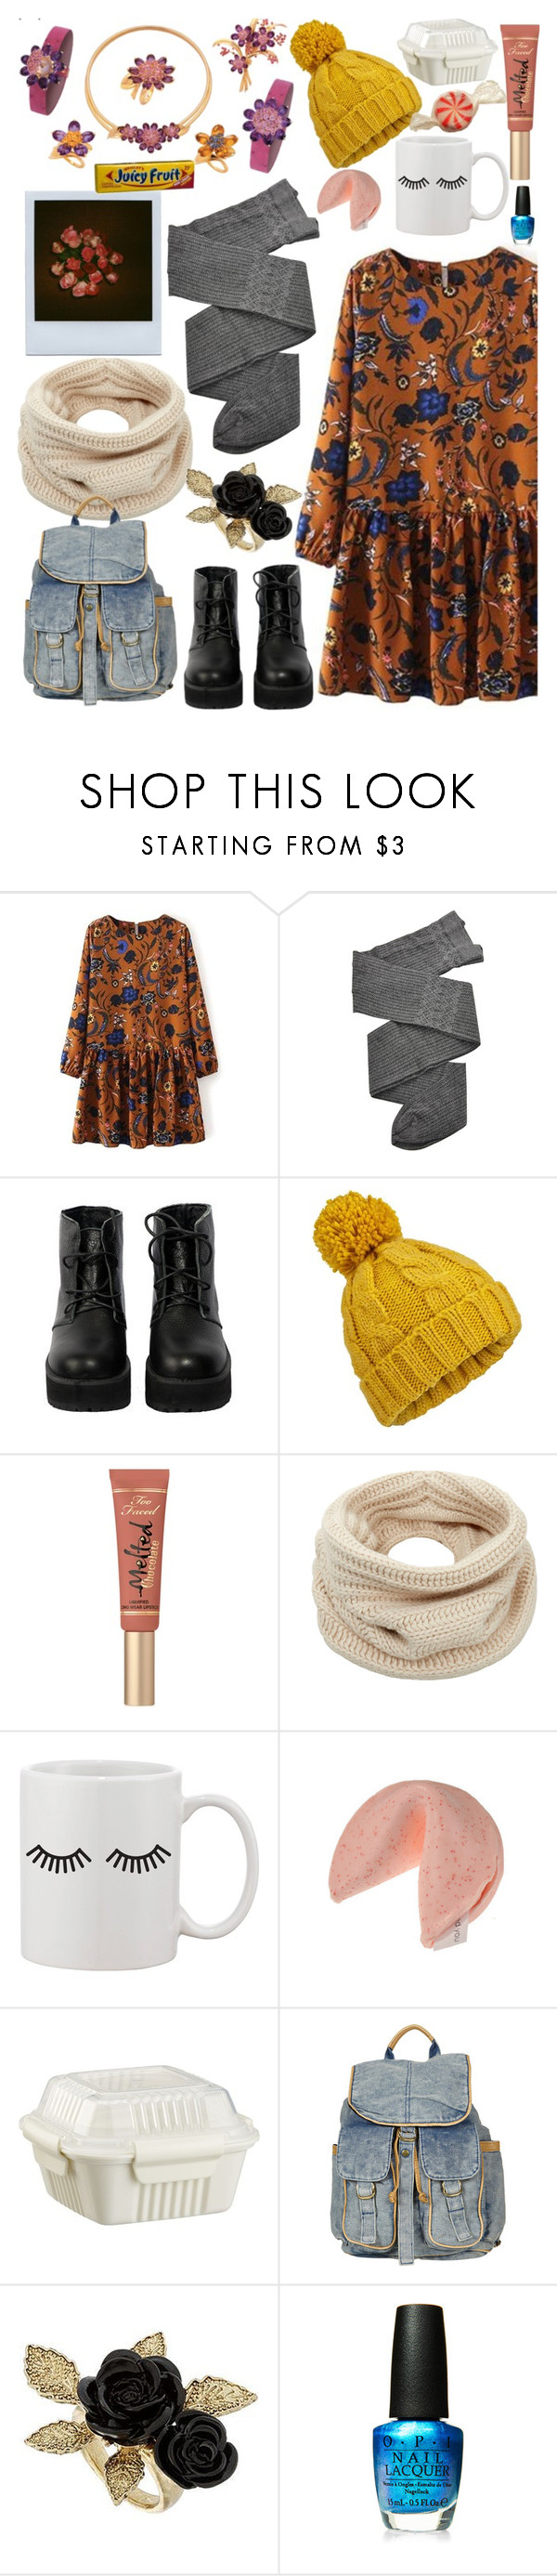 """""""in case of emergency"""" by ivyfanfic ❤ liked on Polyvore featuring Pieces, Trasparenze, The WhitePepper, Miss Selfridge, Too Faced Cosmetics, Helmut Lang, FRUIT, Crate and Barrel, Topshop and OPI"""